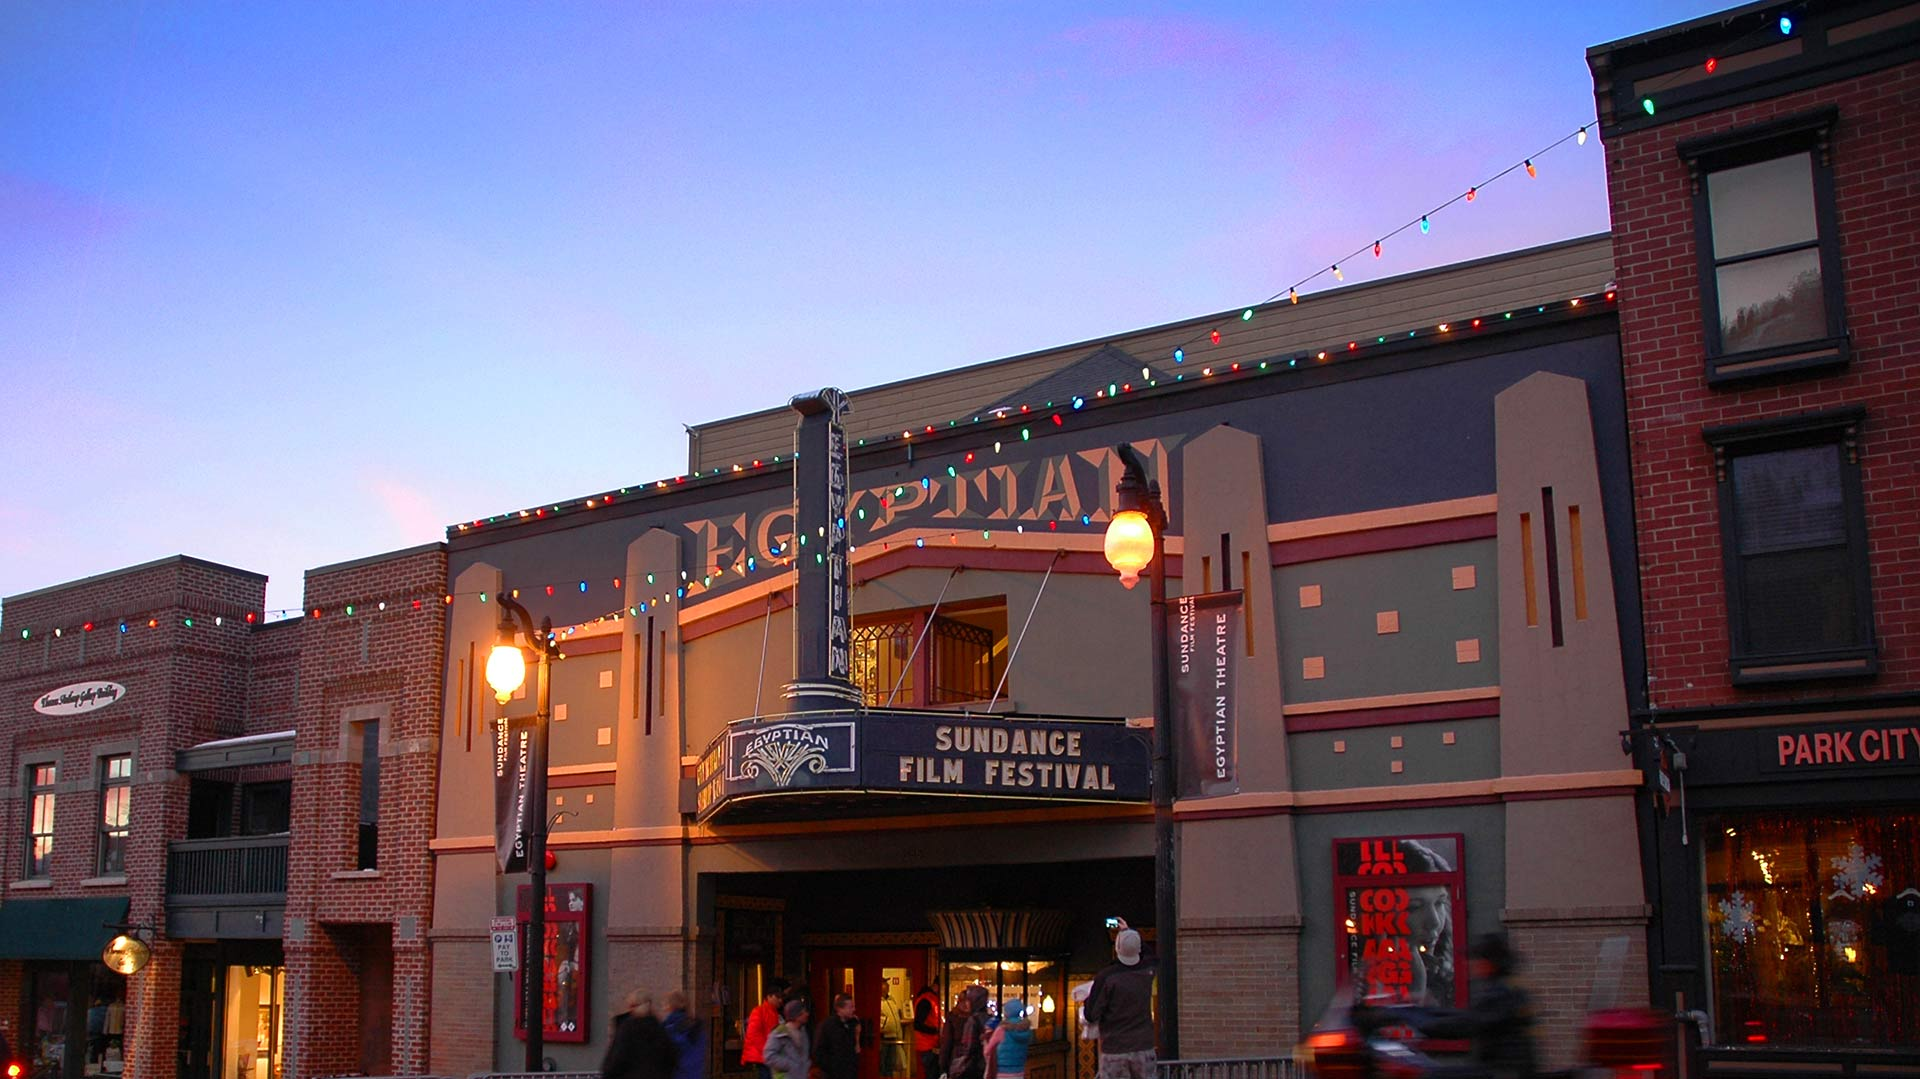 Front Picture of the Egyptian Theater of the Sundance Film Festival.